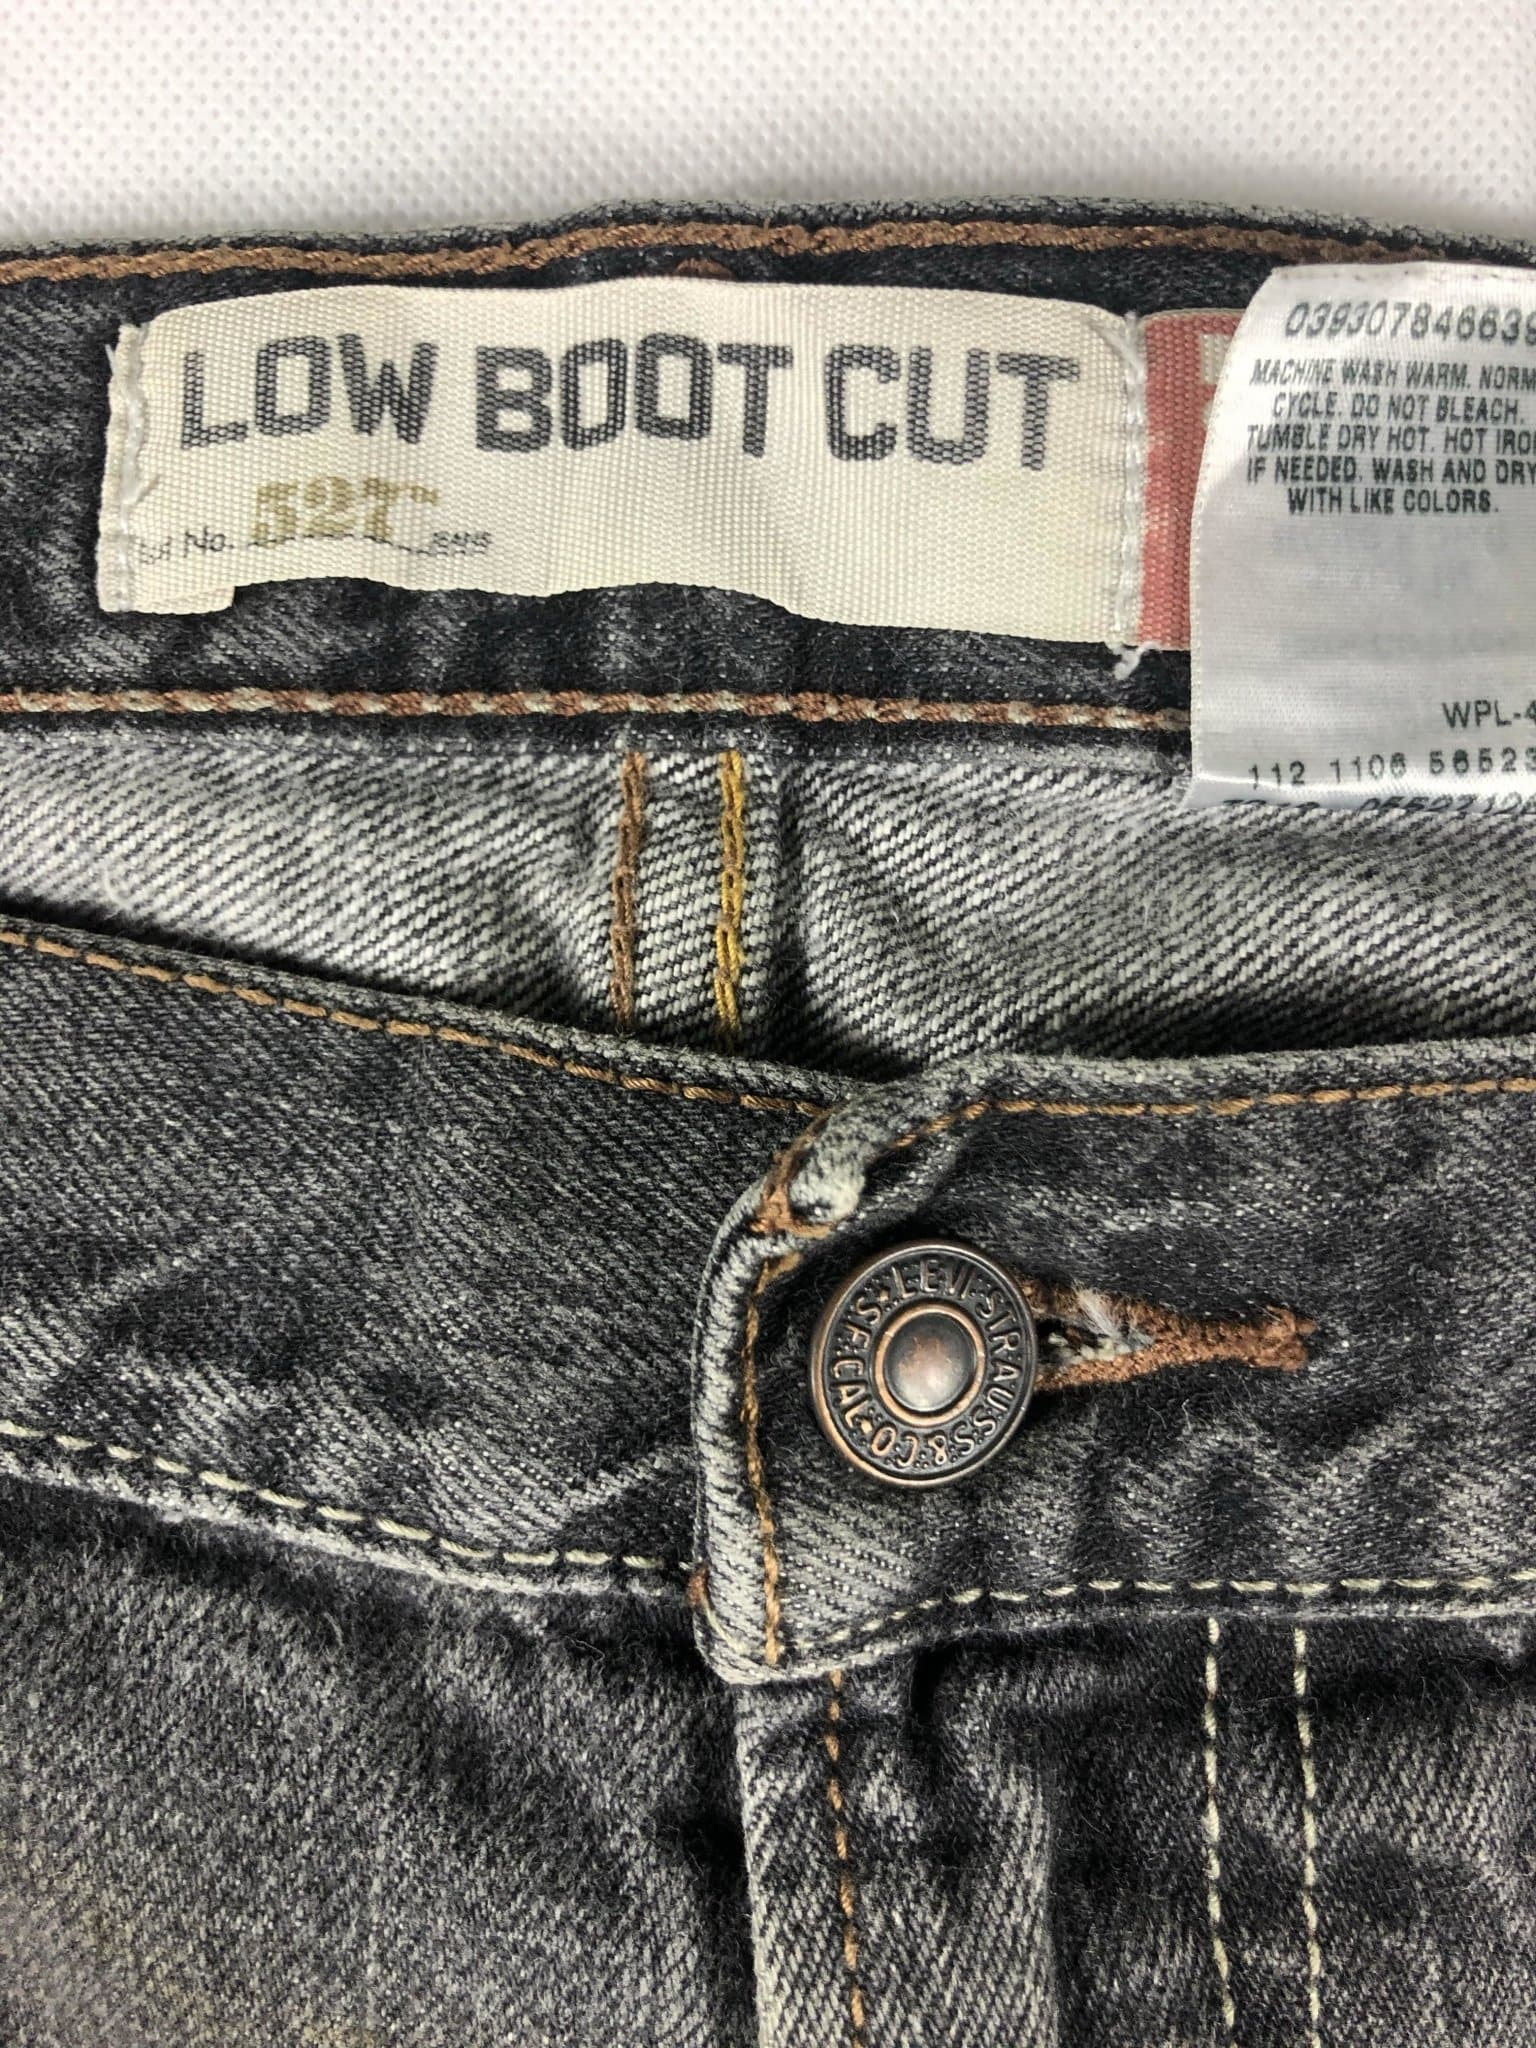 Vintage Levi's 527 Jeans W36 L30 (F1) - Discounted Deals UK